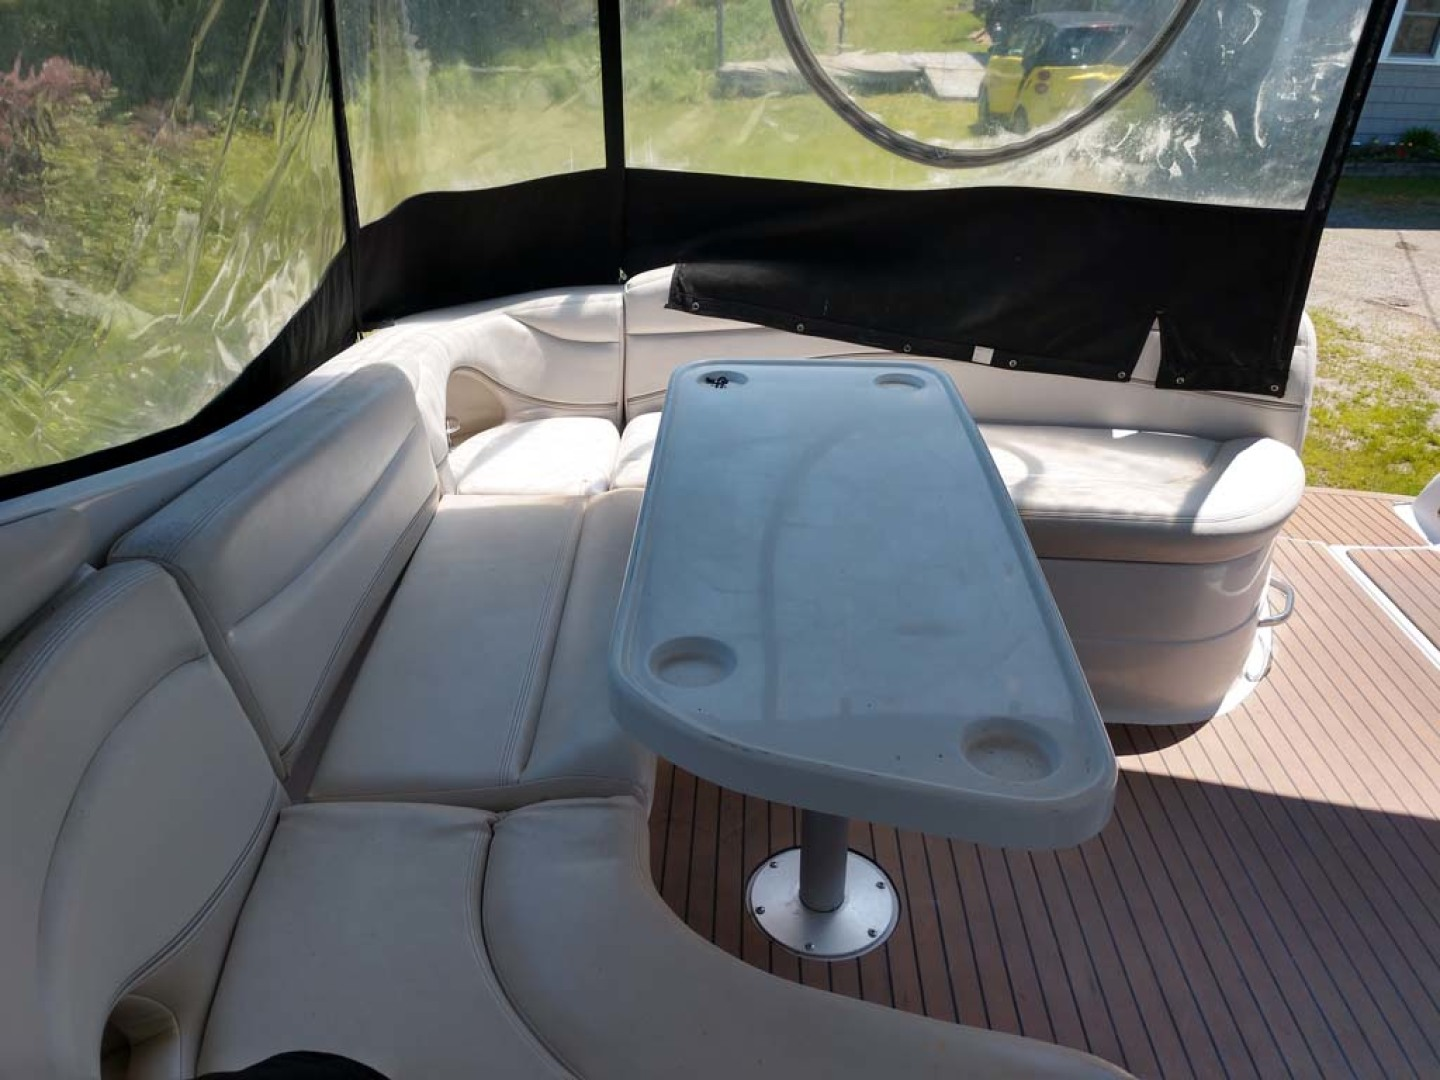 Larson-Cabrio 370 2007-My Tye XII Wiscasset-Maine-United States-Cockpit Seating, Table-1174463 | Thumbnail